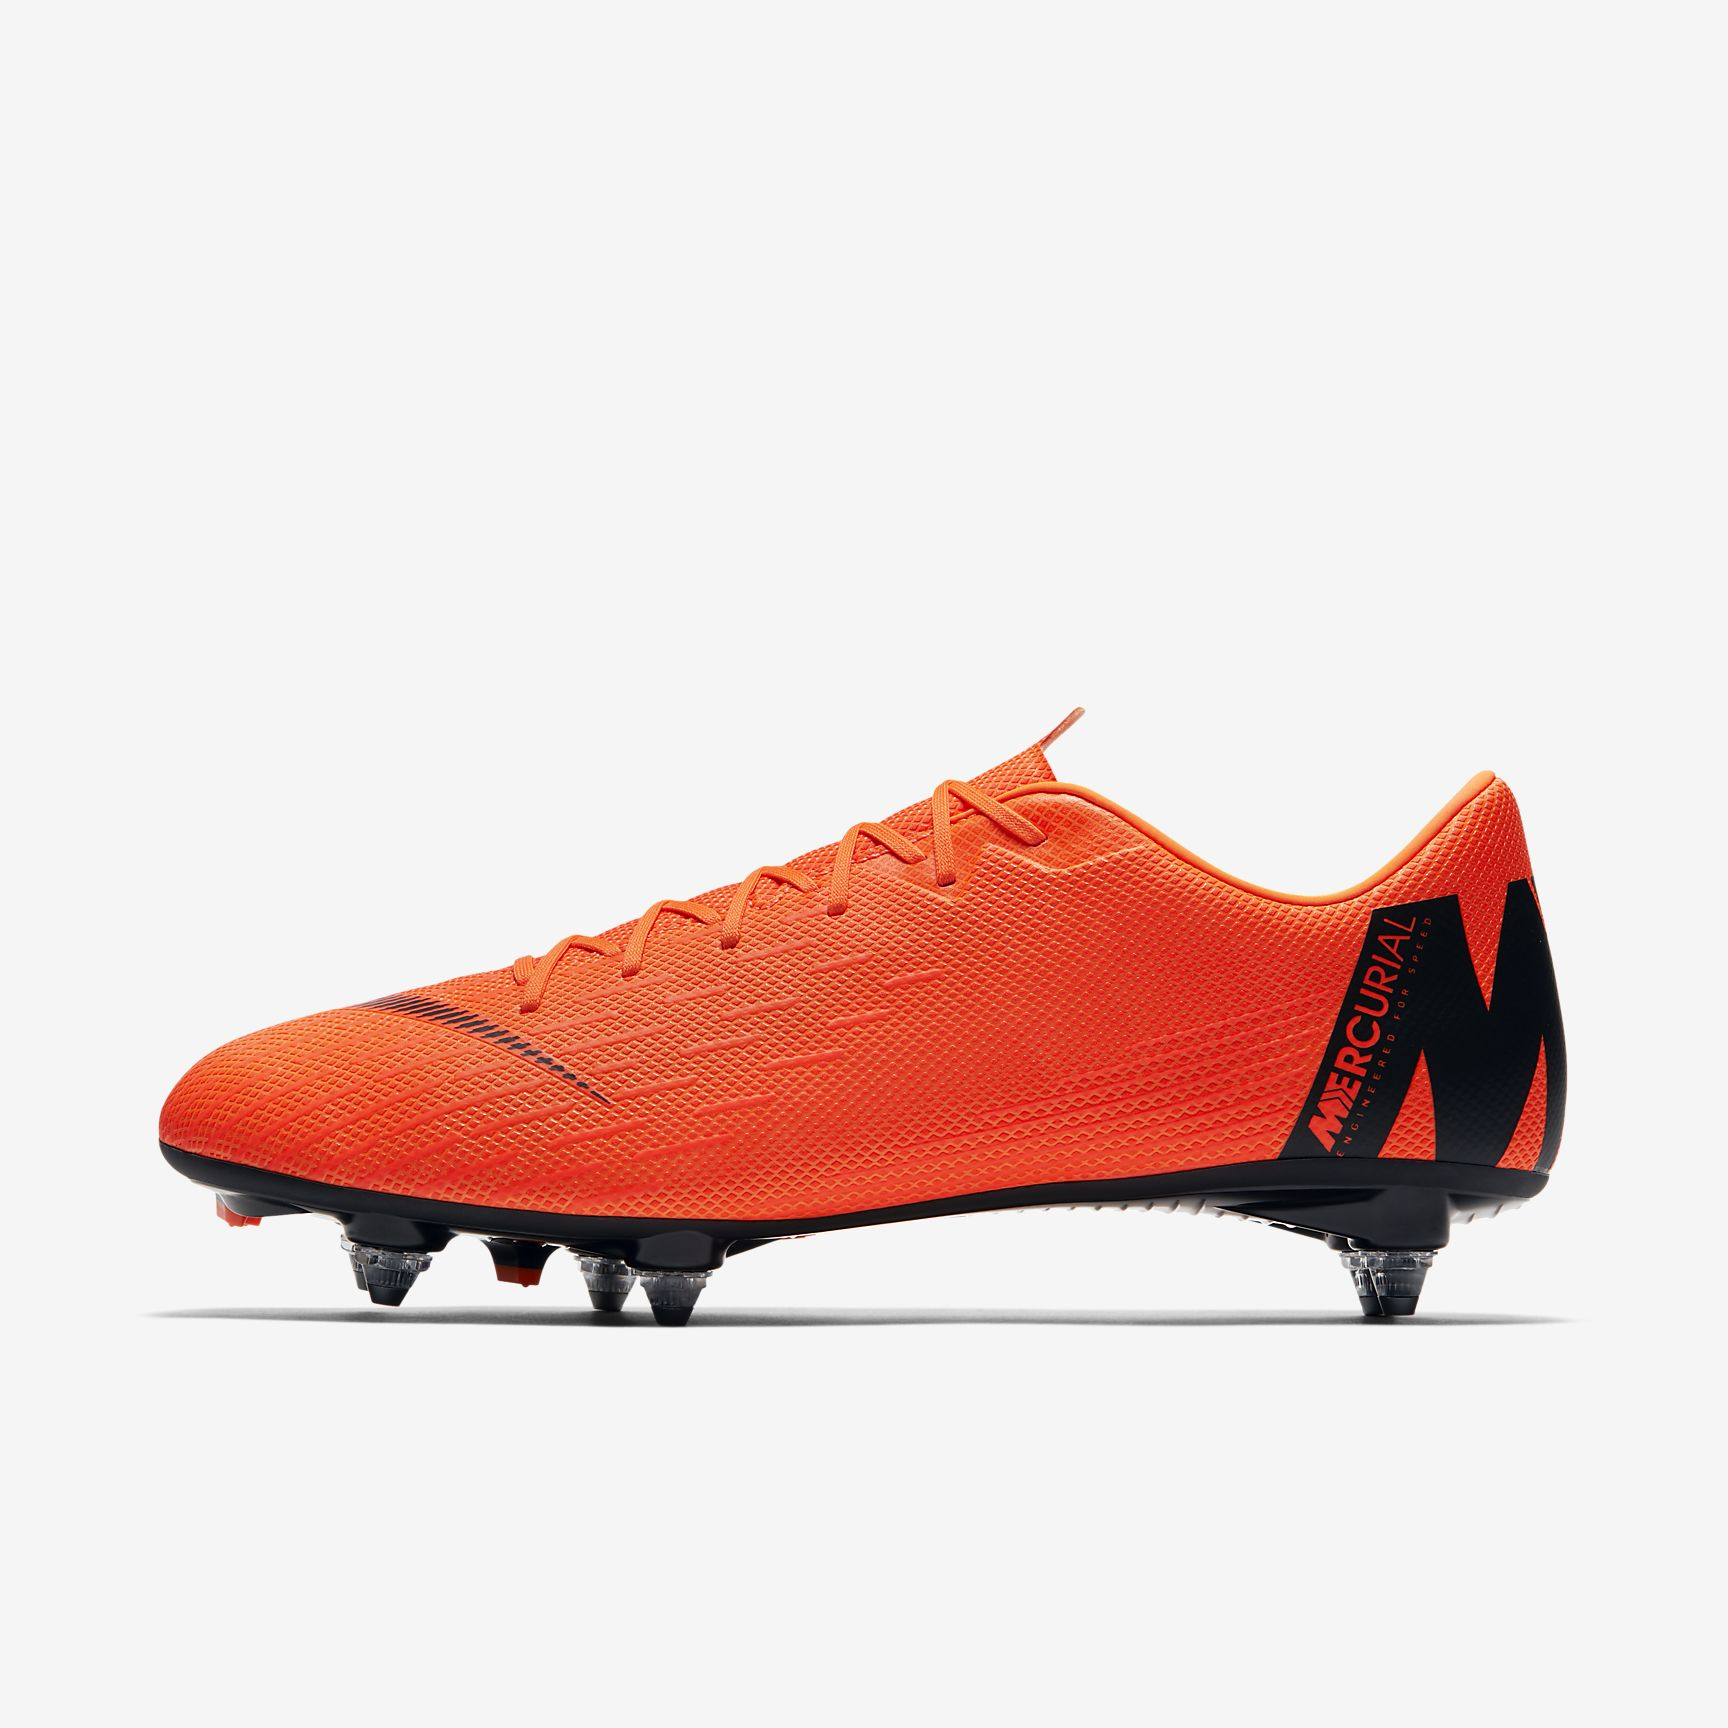 chaussures-football-Nike-Mercurial-Vapor-XII-Academy-img1